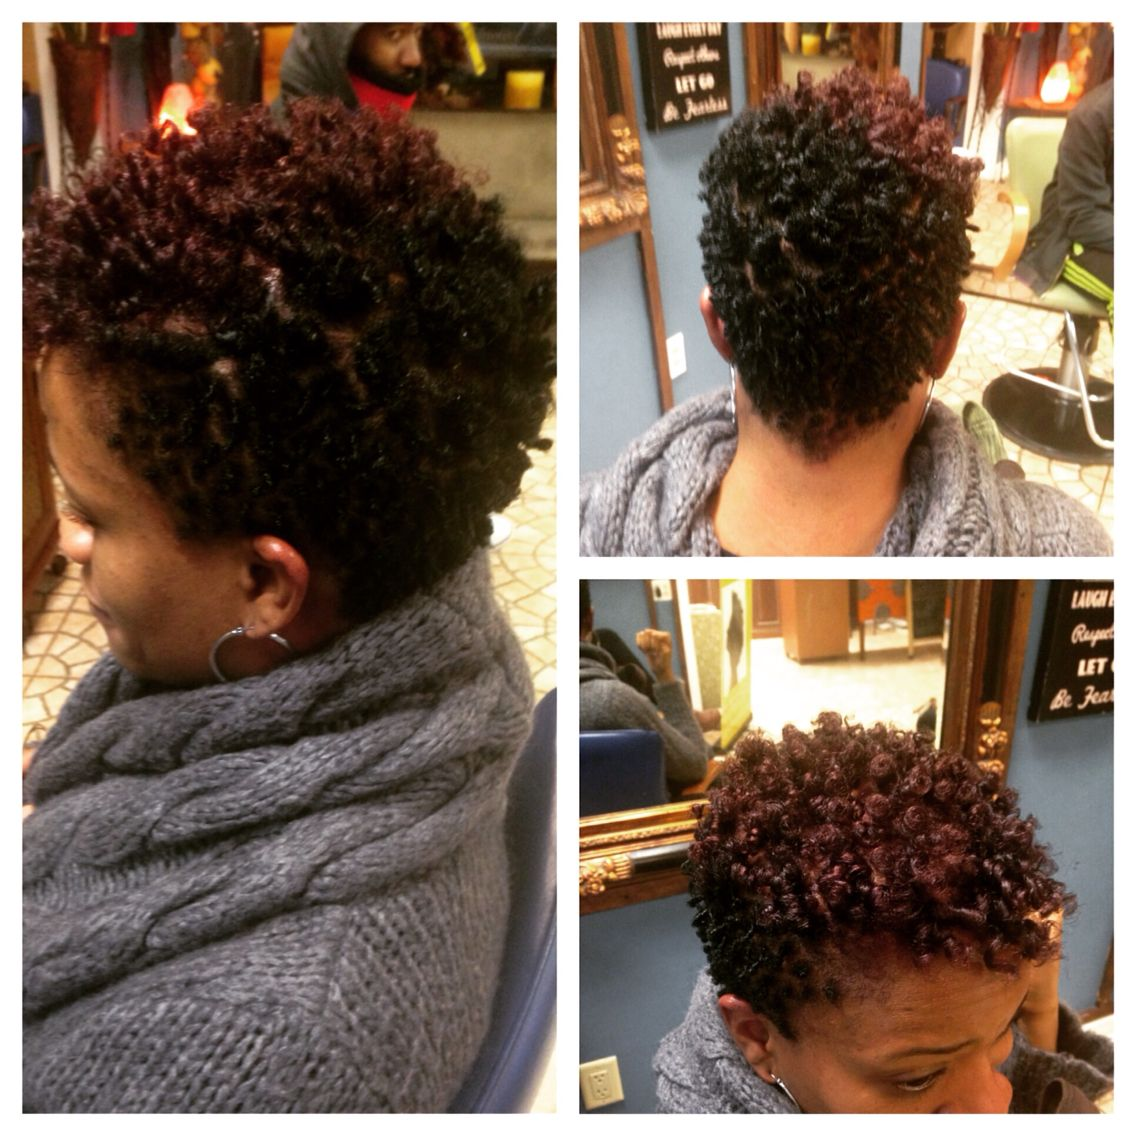 Ium loving my new cut and color flexirod style natural hair